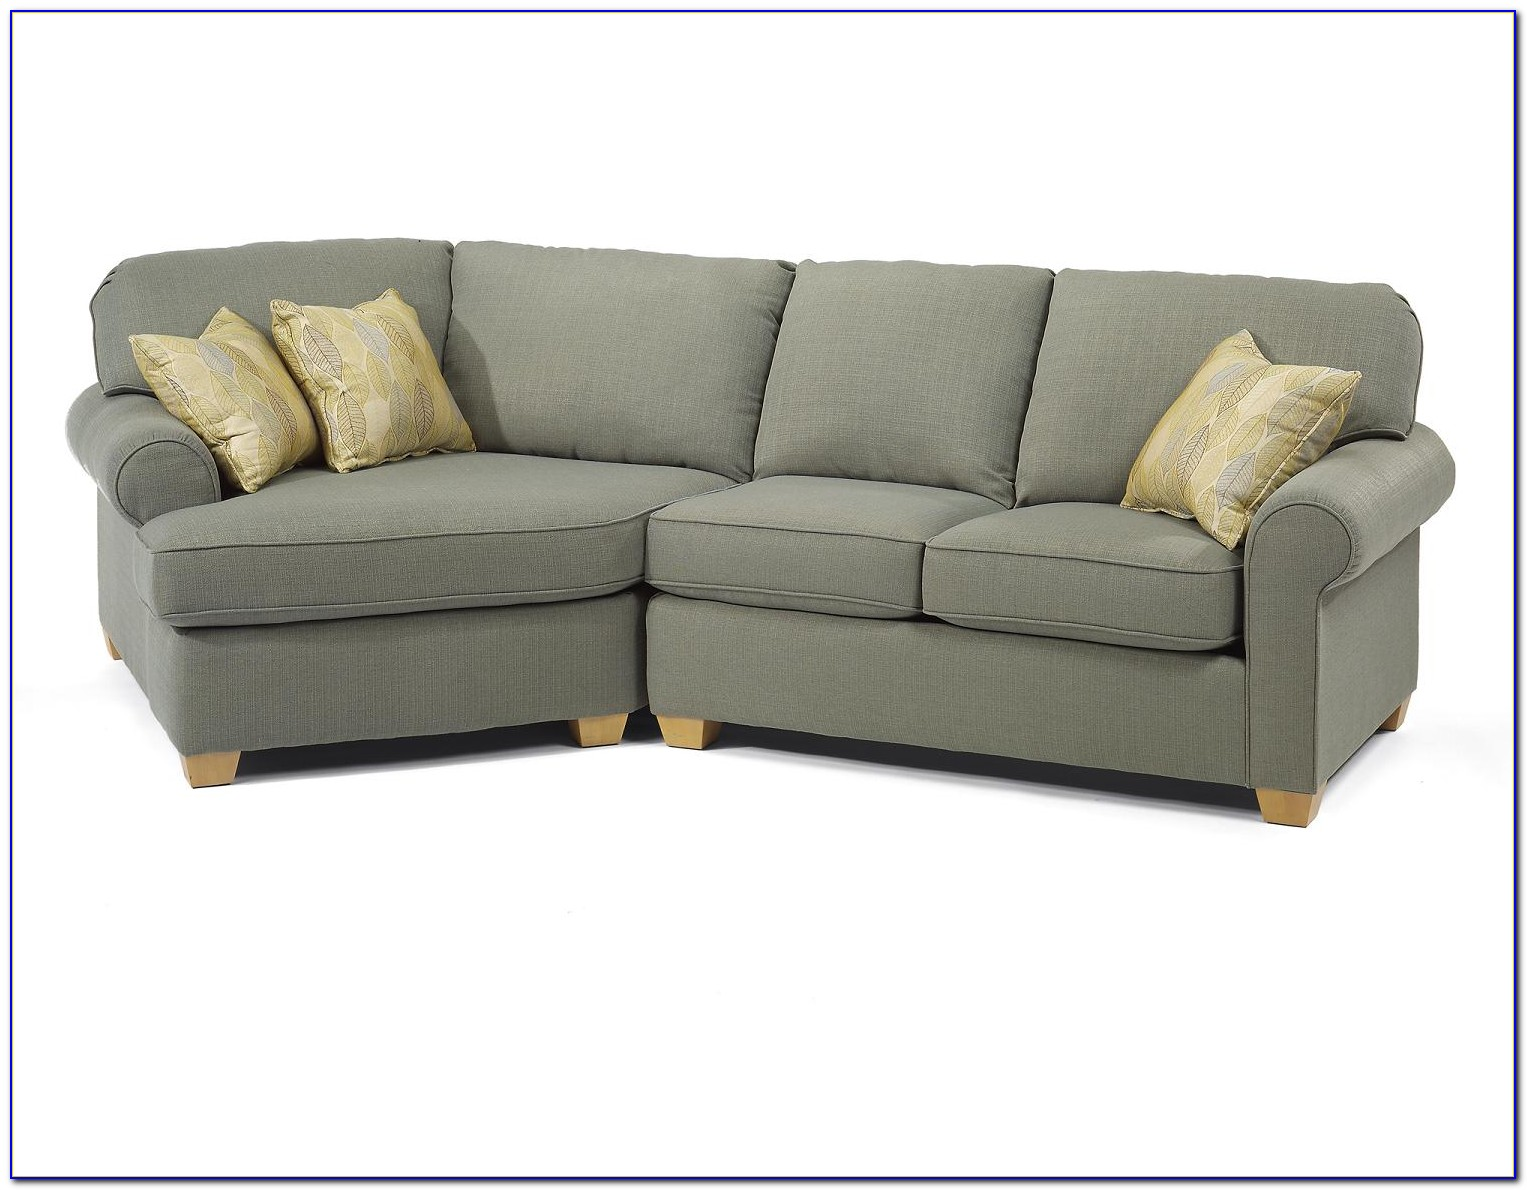 Sofa Sectional With Chaise Lounge